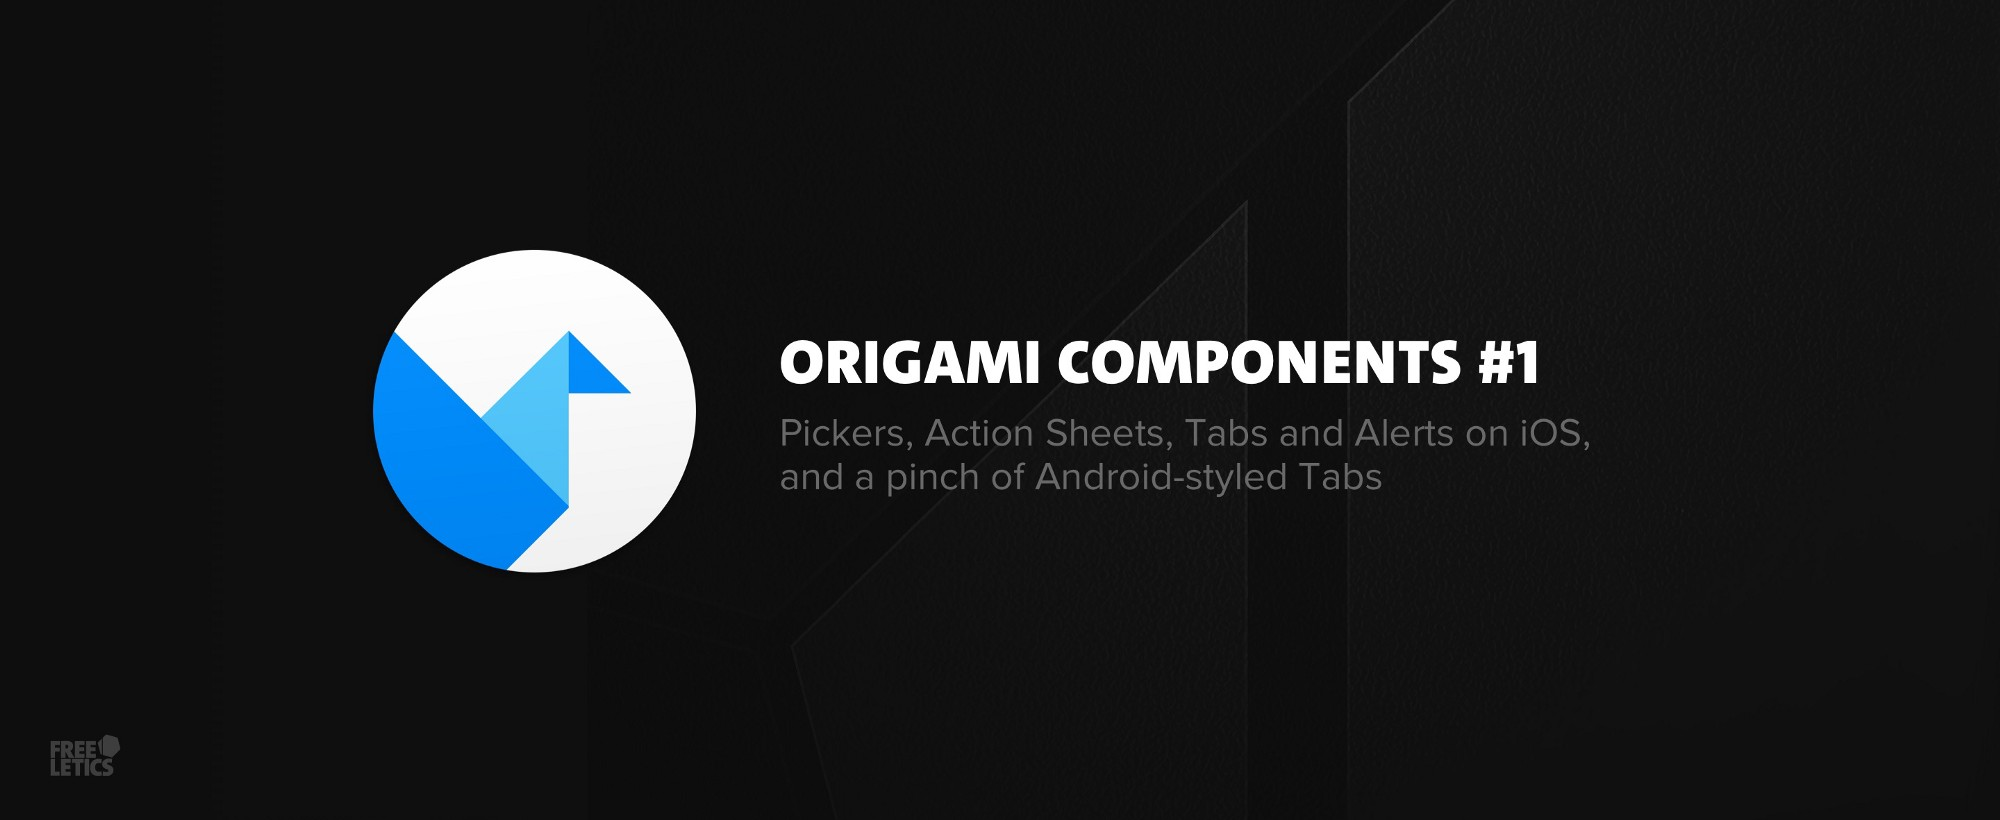 Origami Components 1 Pickers Action Sheets Tabs And Alerts On IOS A Pinch Of Android Styled